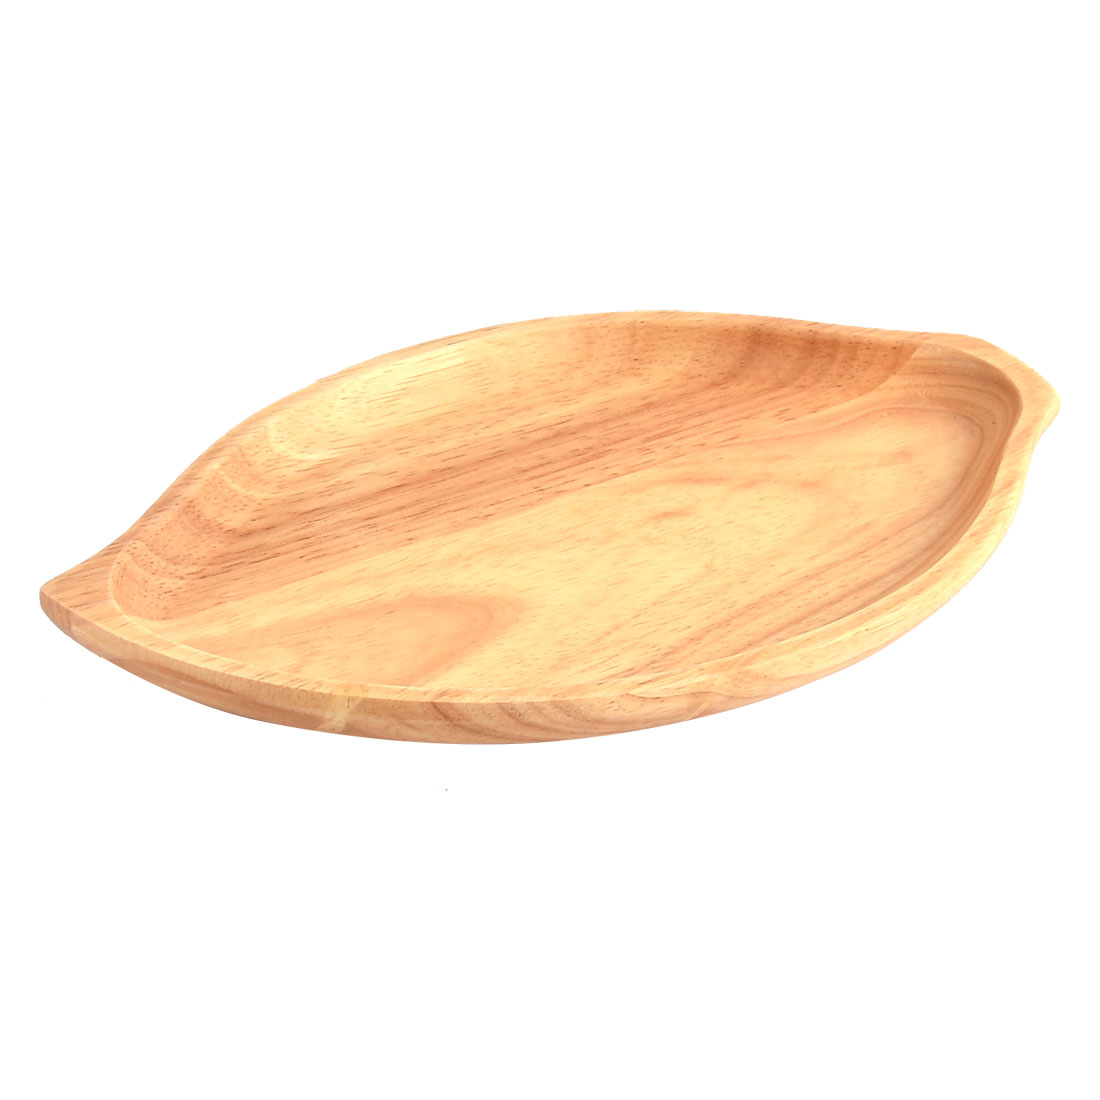 Household Wood Grain Pattern Leaf Shape Pastry Cake Serving Tray Container